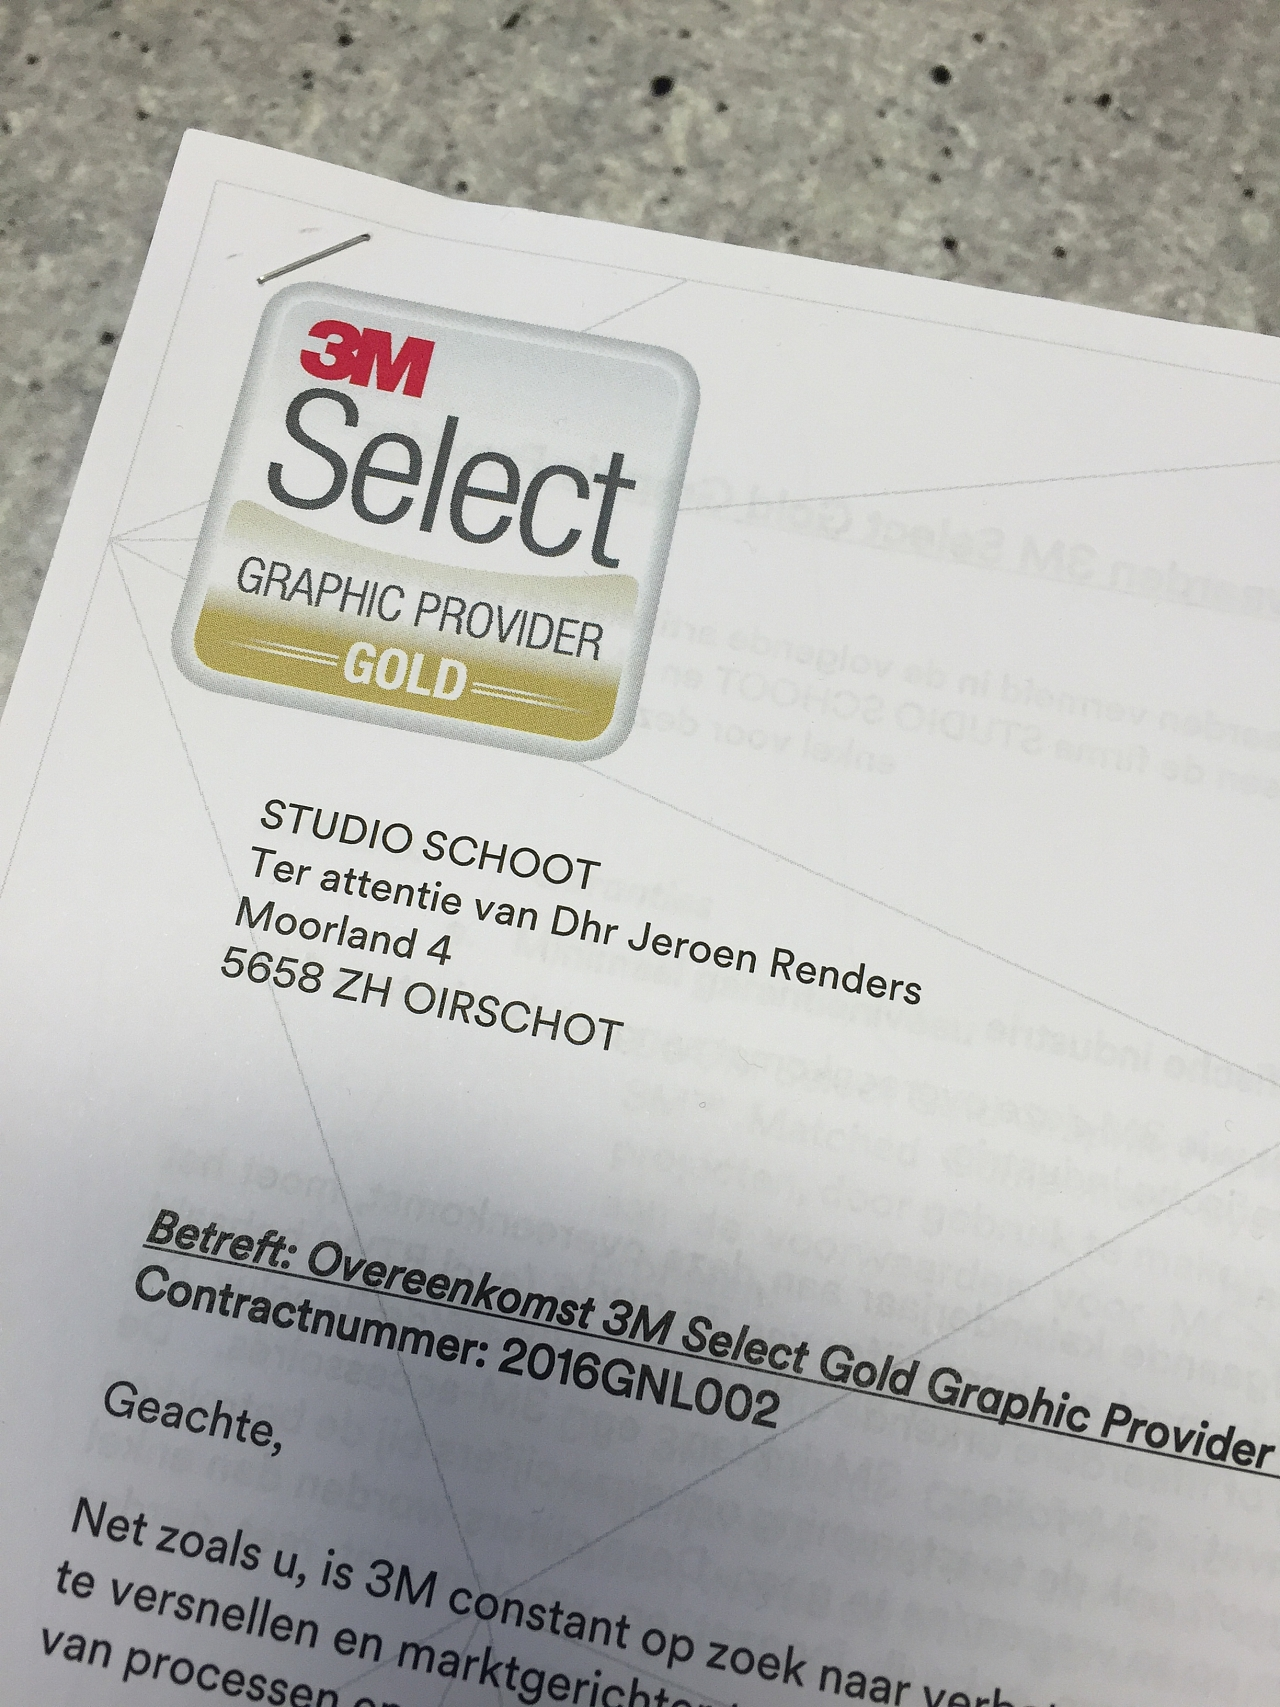 3M Select Gold Graphic Provider